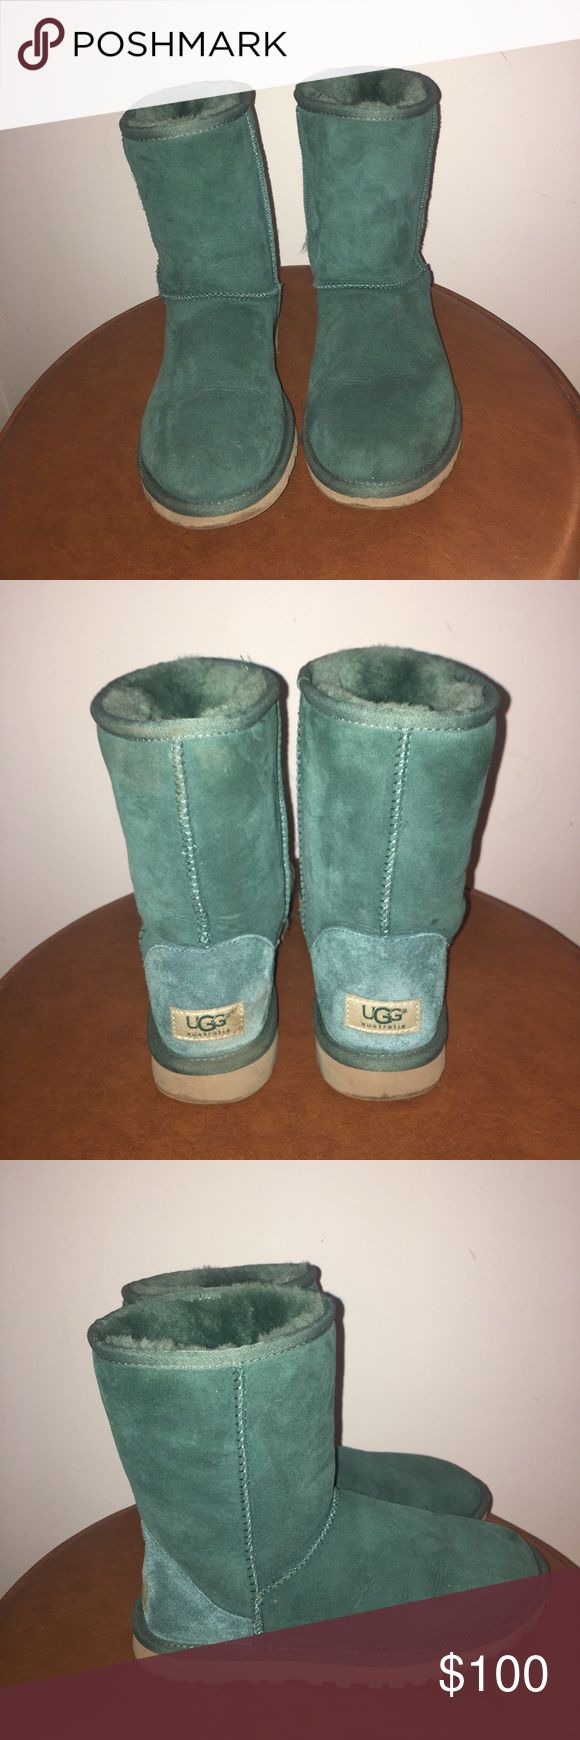 Ugg classic short turquoise boots Classic authentic turquoise Ugg short size 6/36 worn only once! Excellent condition looks brand new! UGG Shoes Winter & Rain Boots